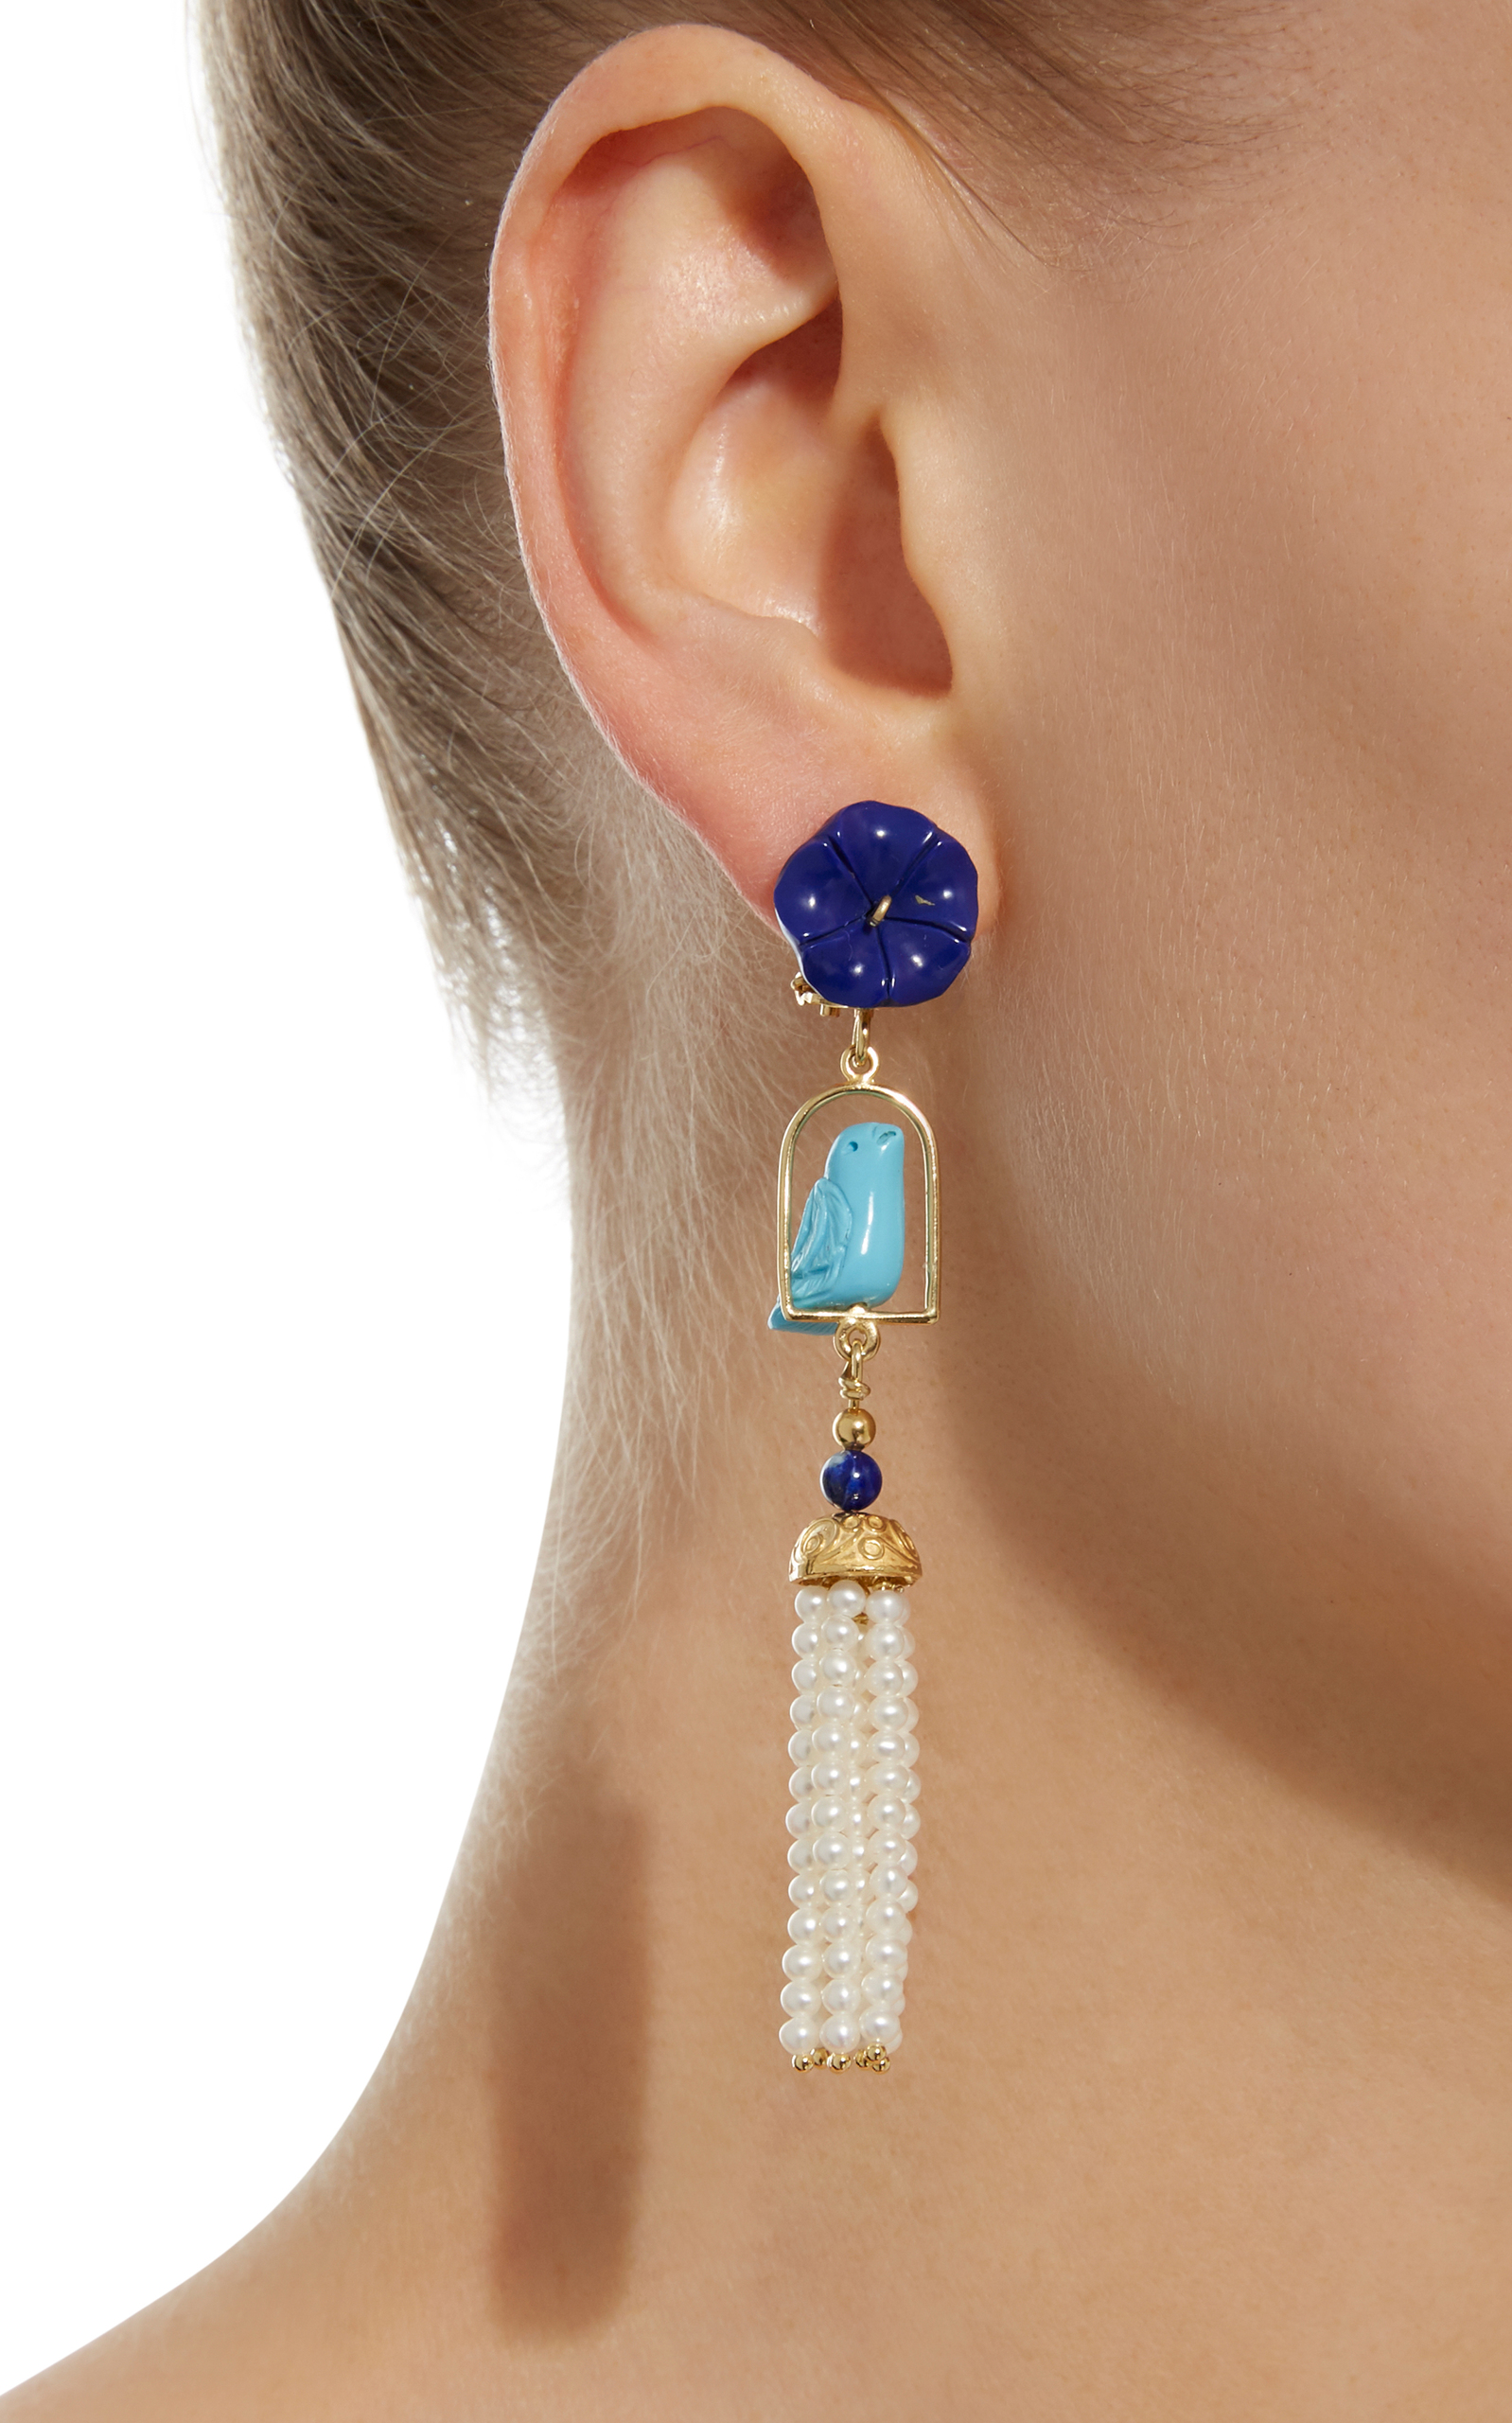 Swingers 18K Yellow Gold Vermeil Lapis Turquoise and Pearl Earrings Of Rare Origin ao2bmuhYX0